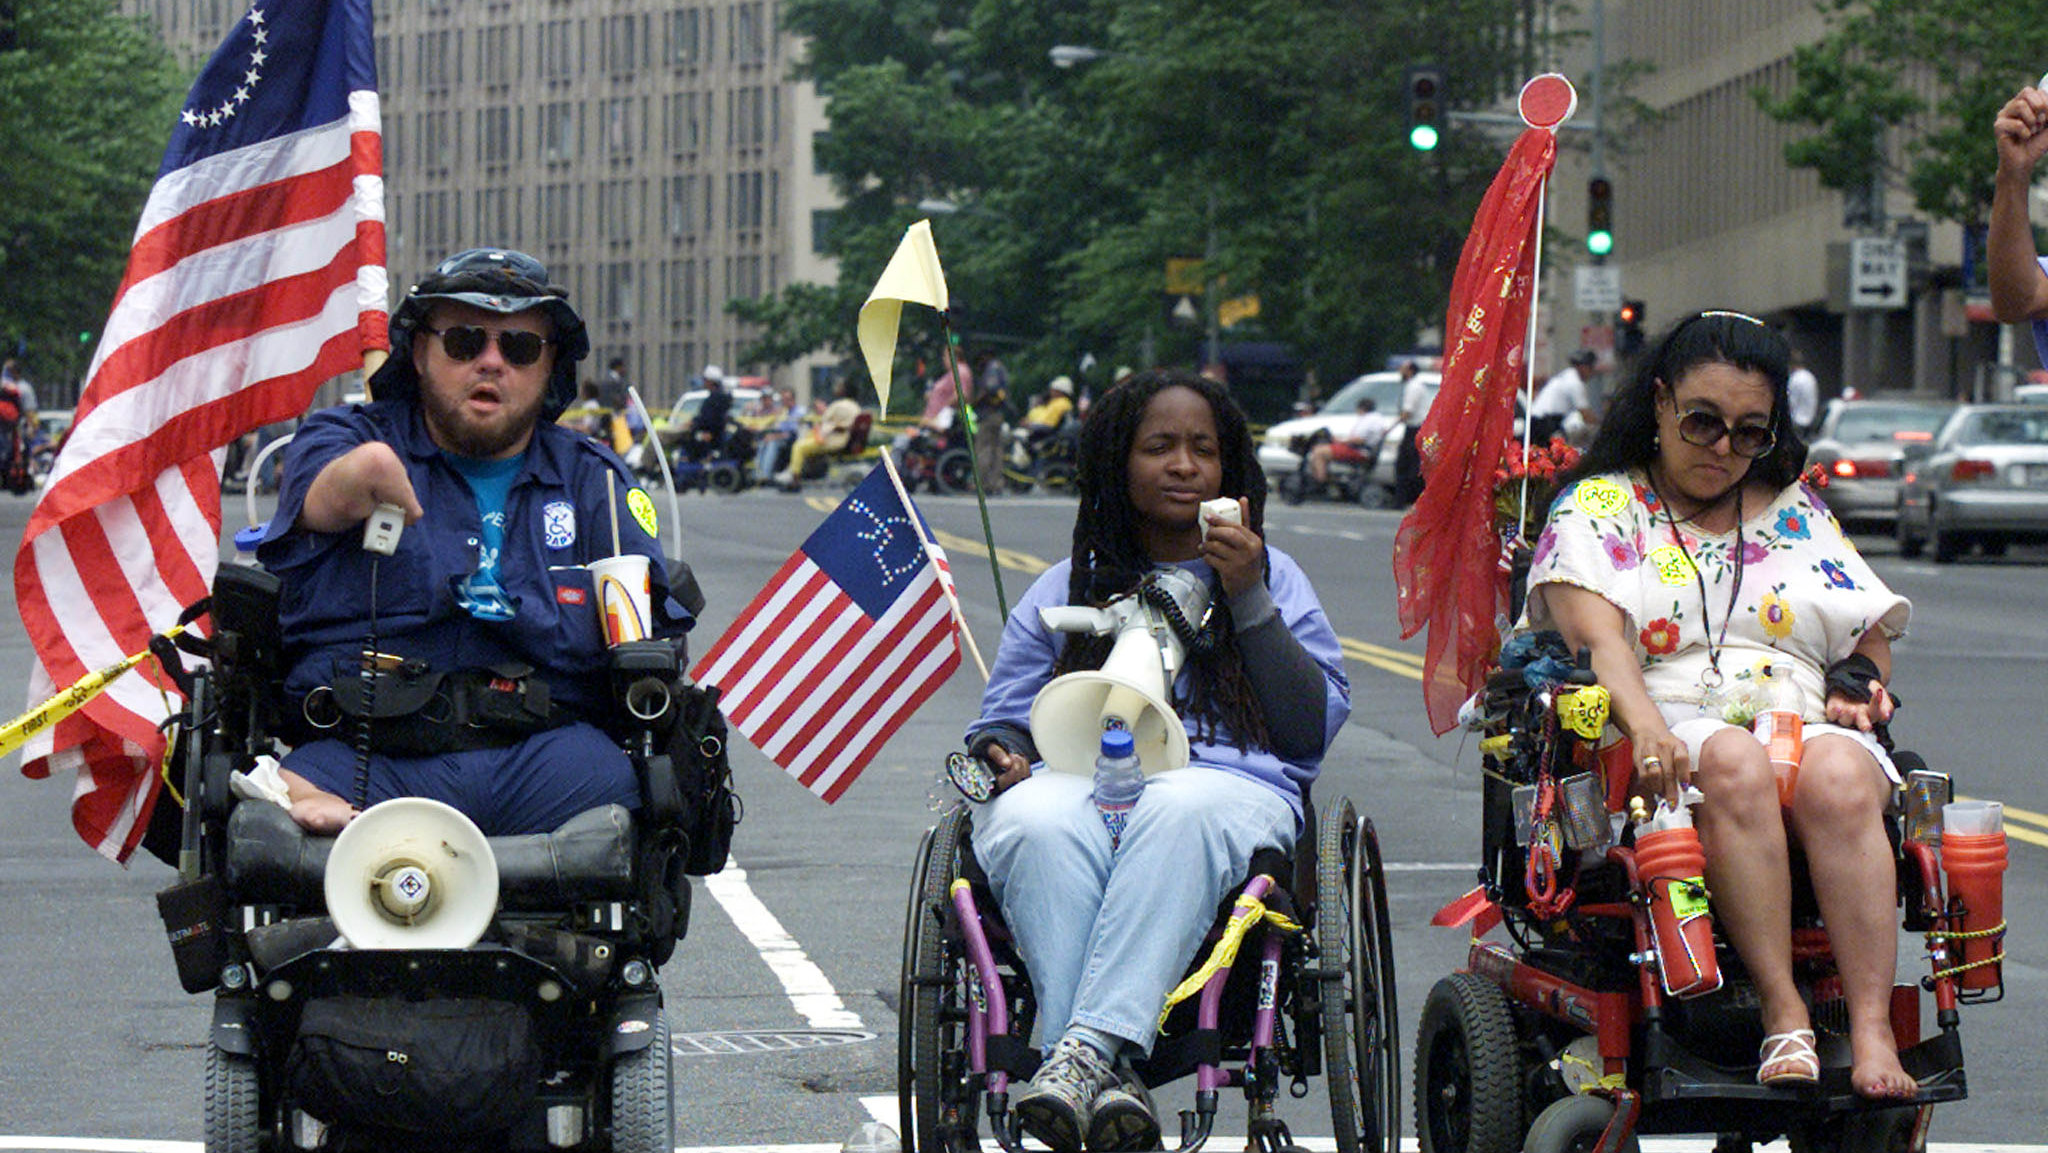 Anita Cameron (center) at an ADAPT protest in Washington, DC in 2002.